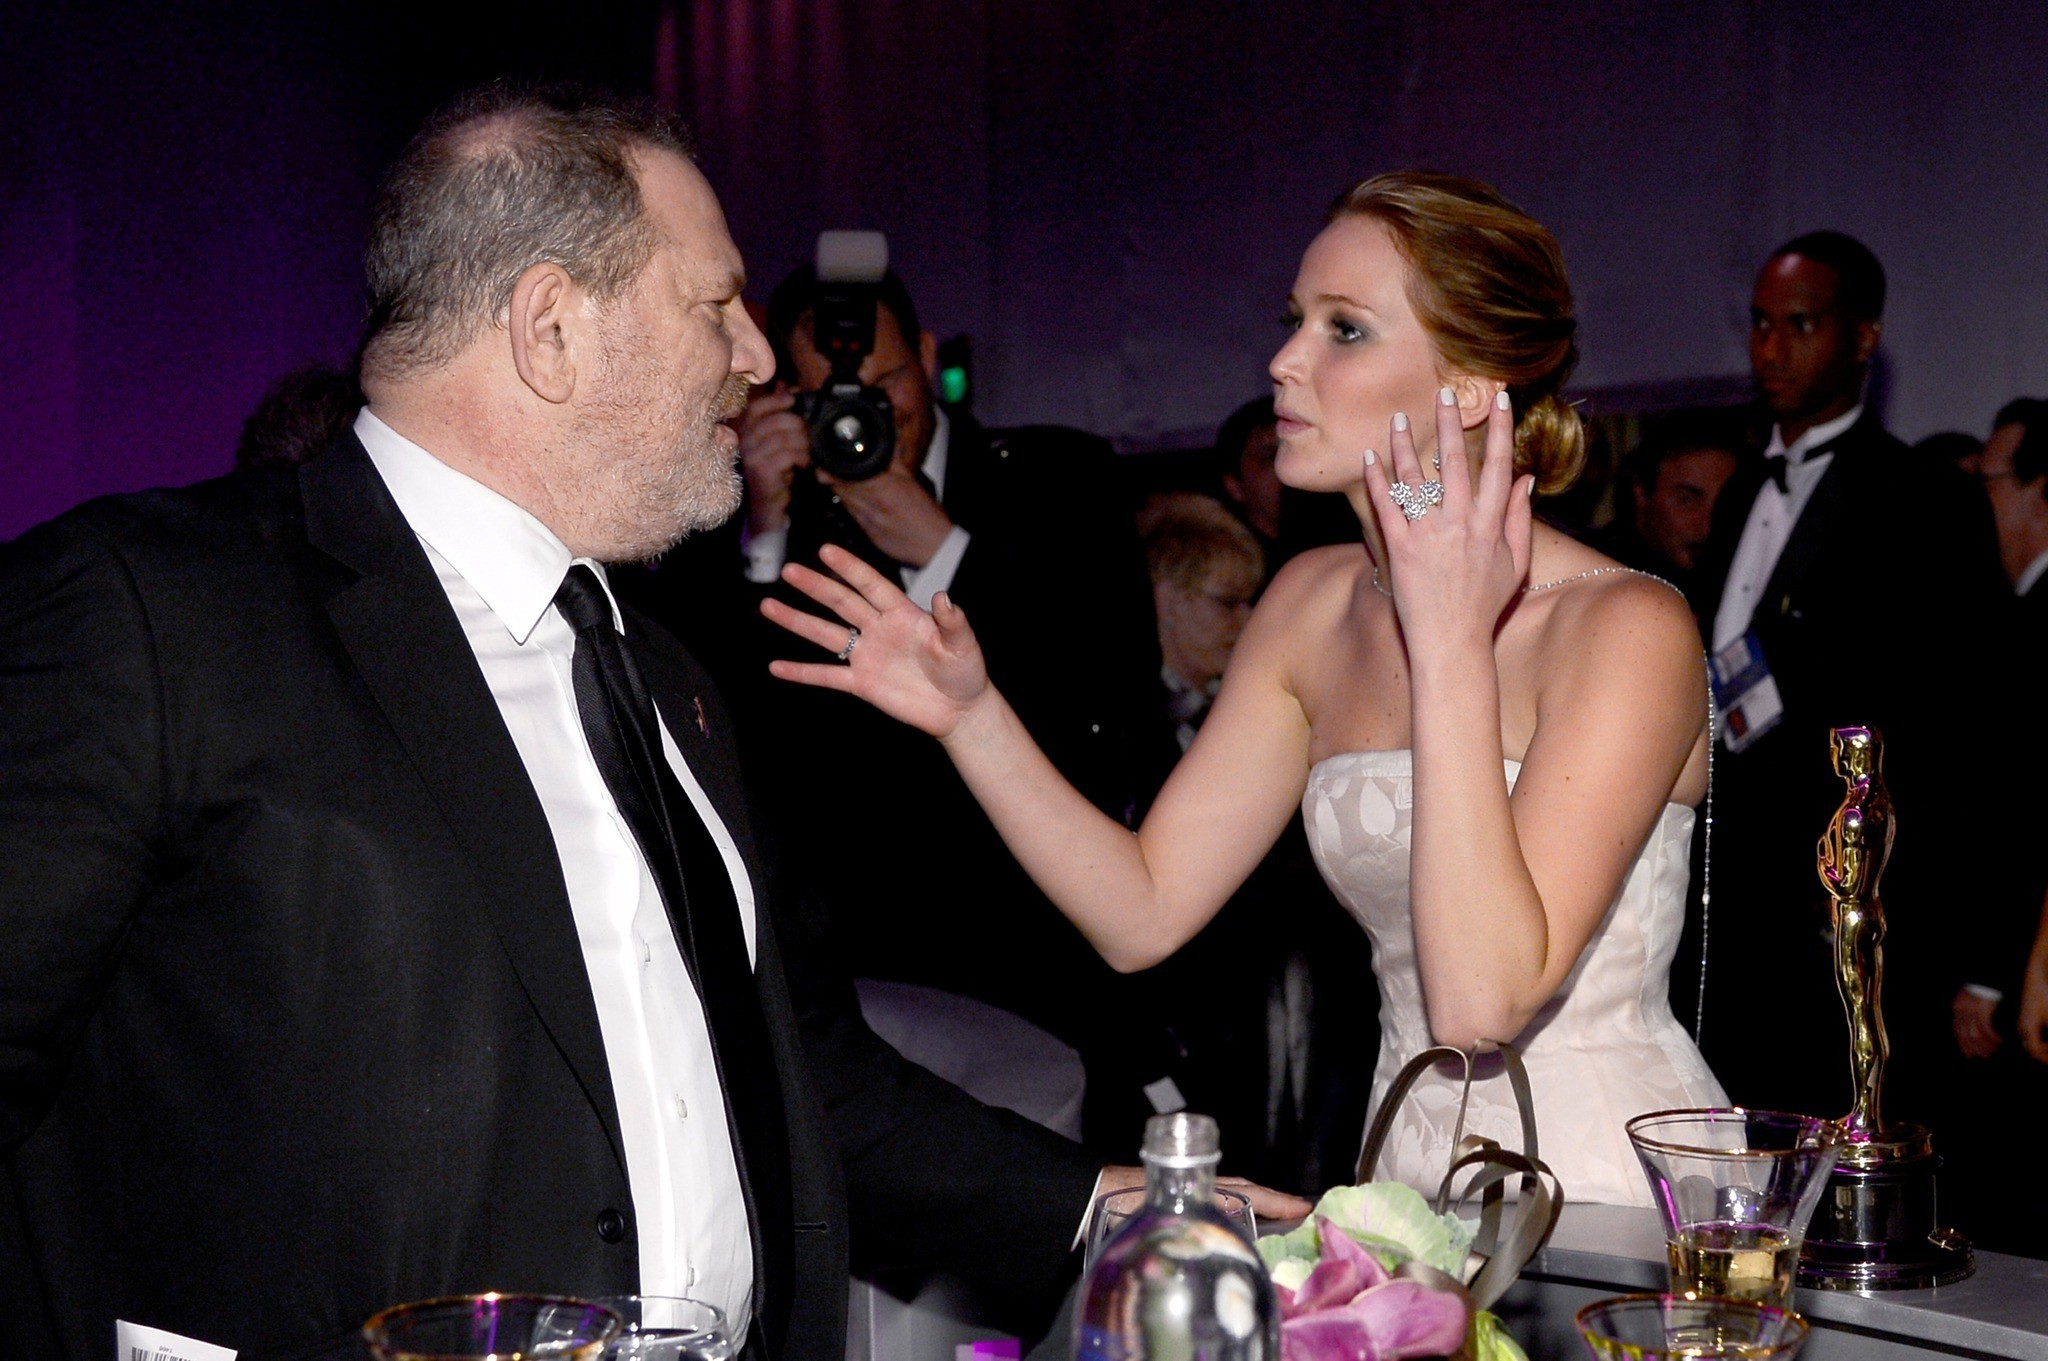 """Silver Linings Playbook"" producer Harvey Weinstein talks with Oscar winner Jennifer Lawrence at the 2013 Oscars Governors Ball. (Kevork Djansezian / Getty Images)"